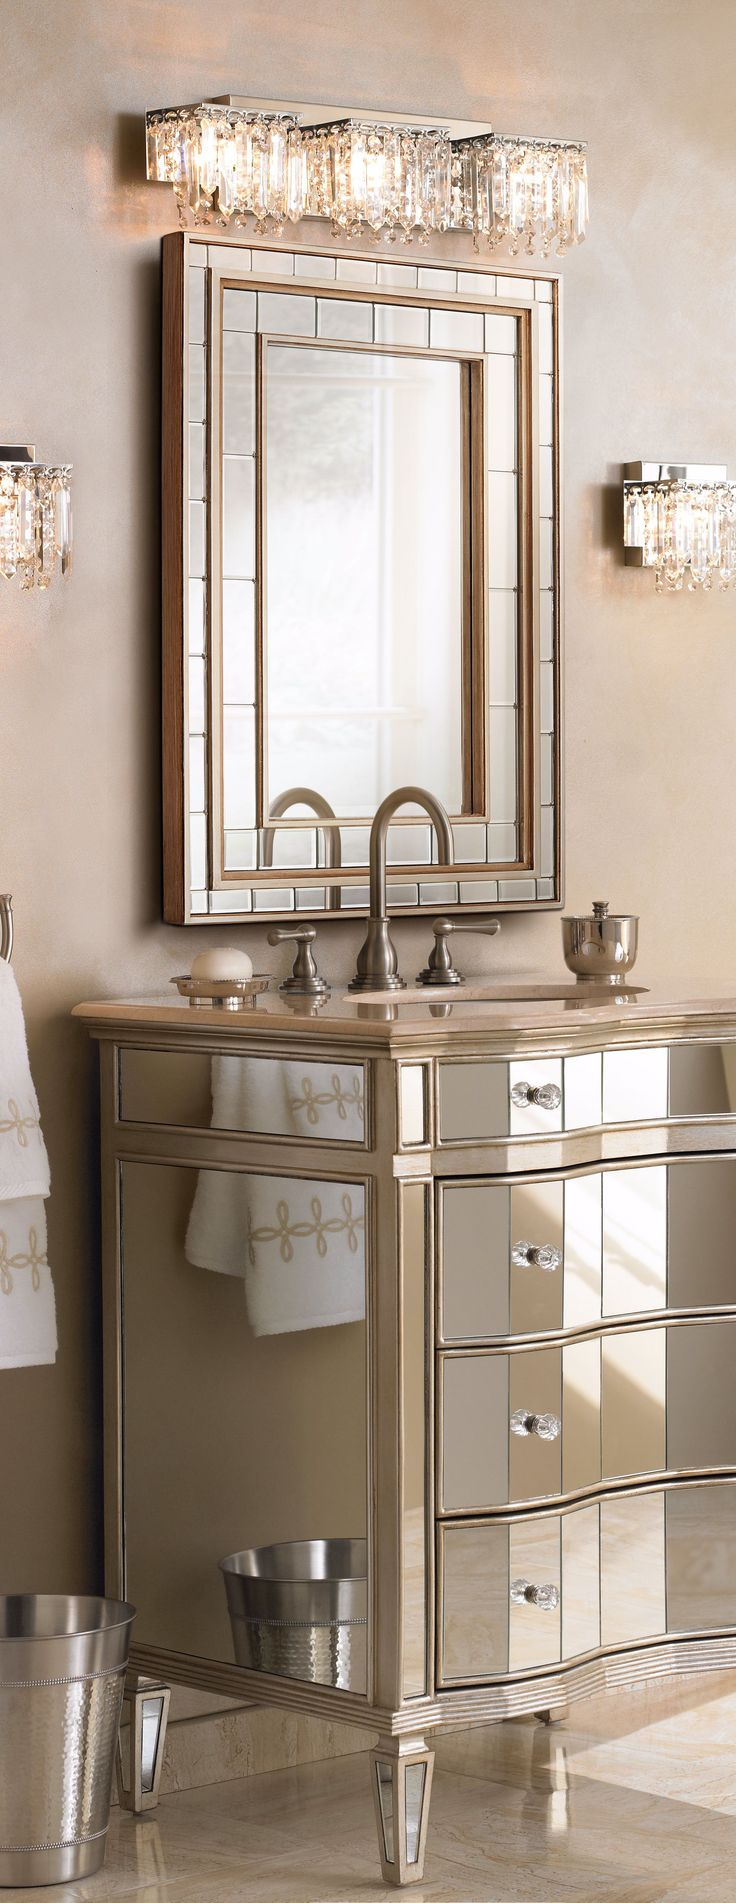 A glamorous bathroom with plenty of mirrors and mirrored furniture. Products Possini Euro Design : bathroom sink lighting - azcodes.com